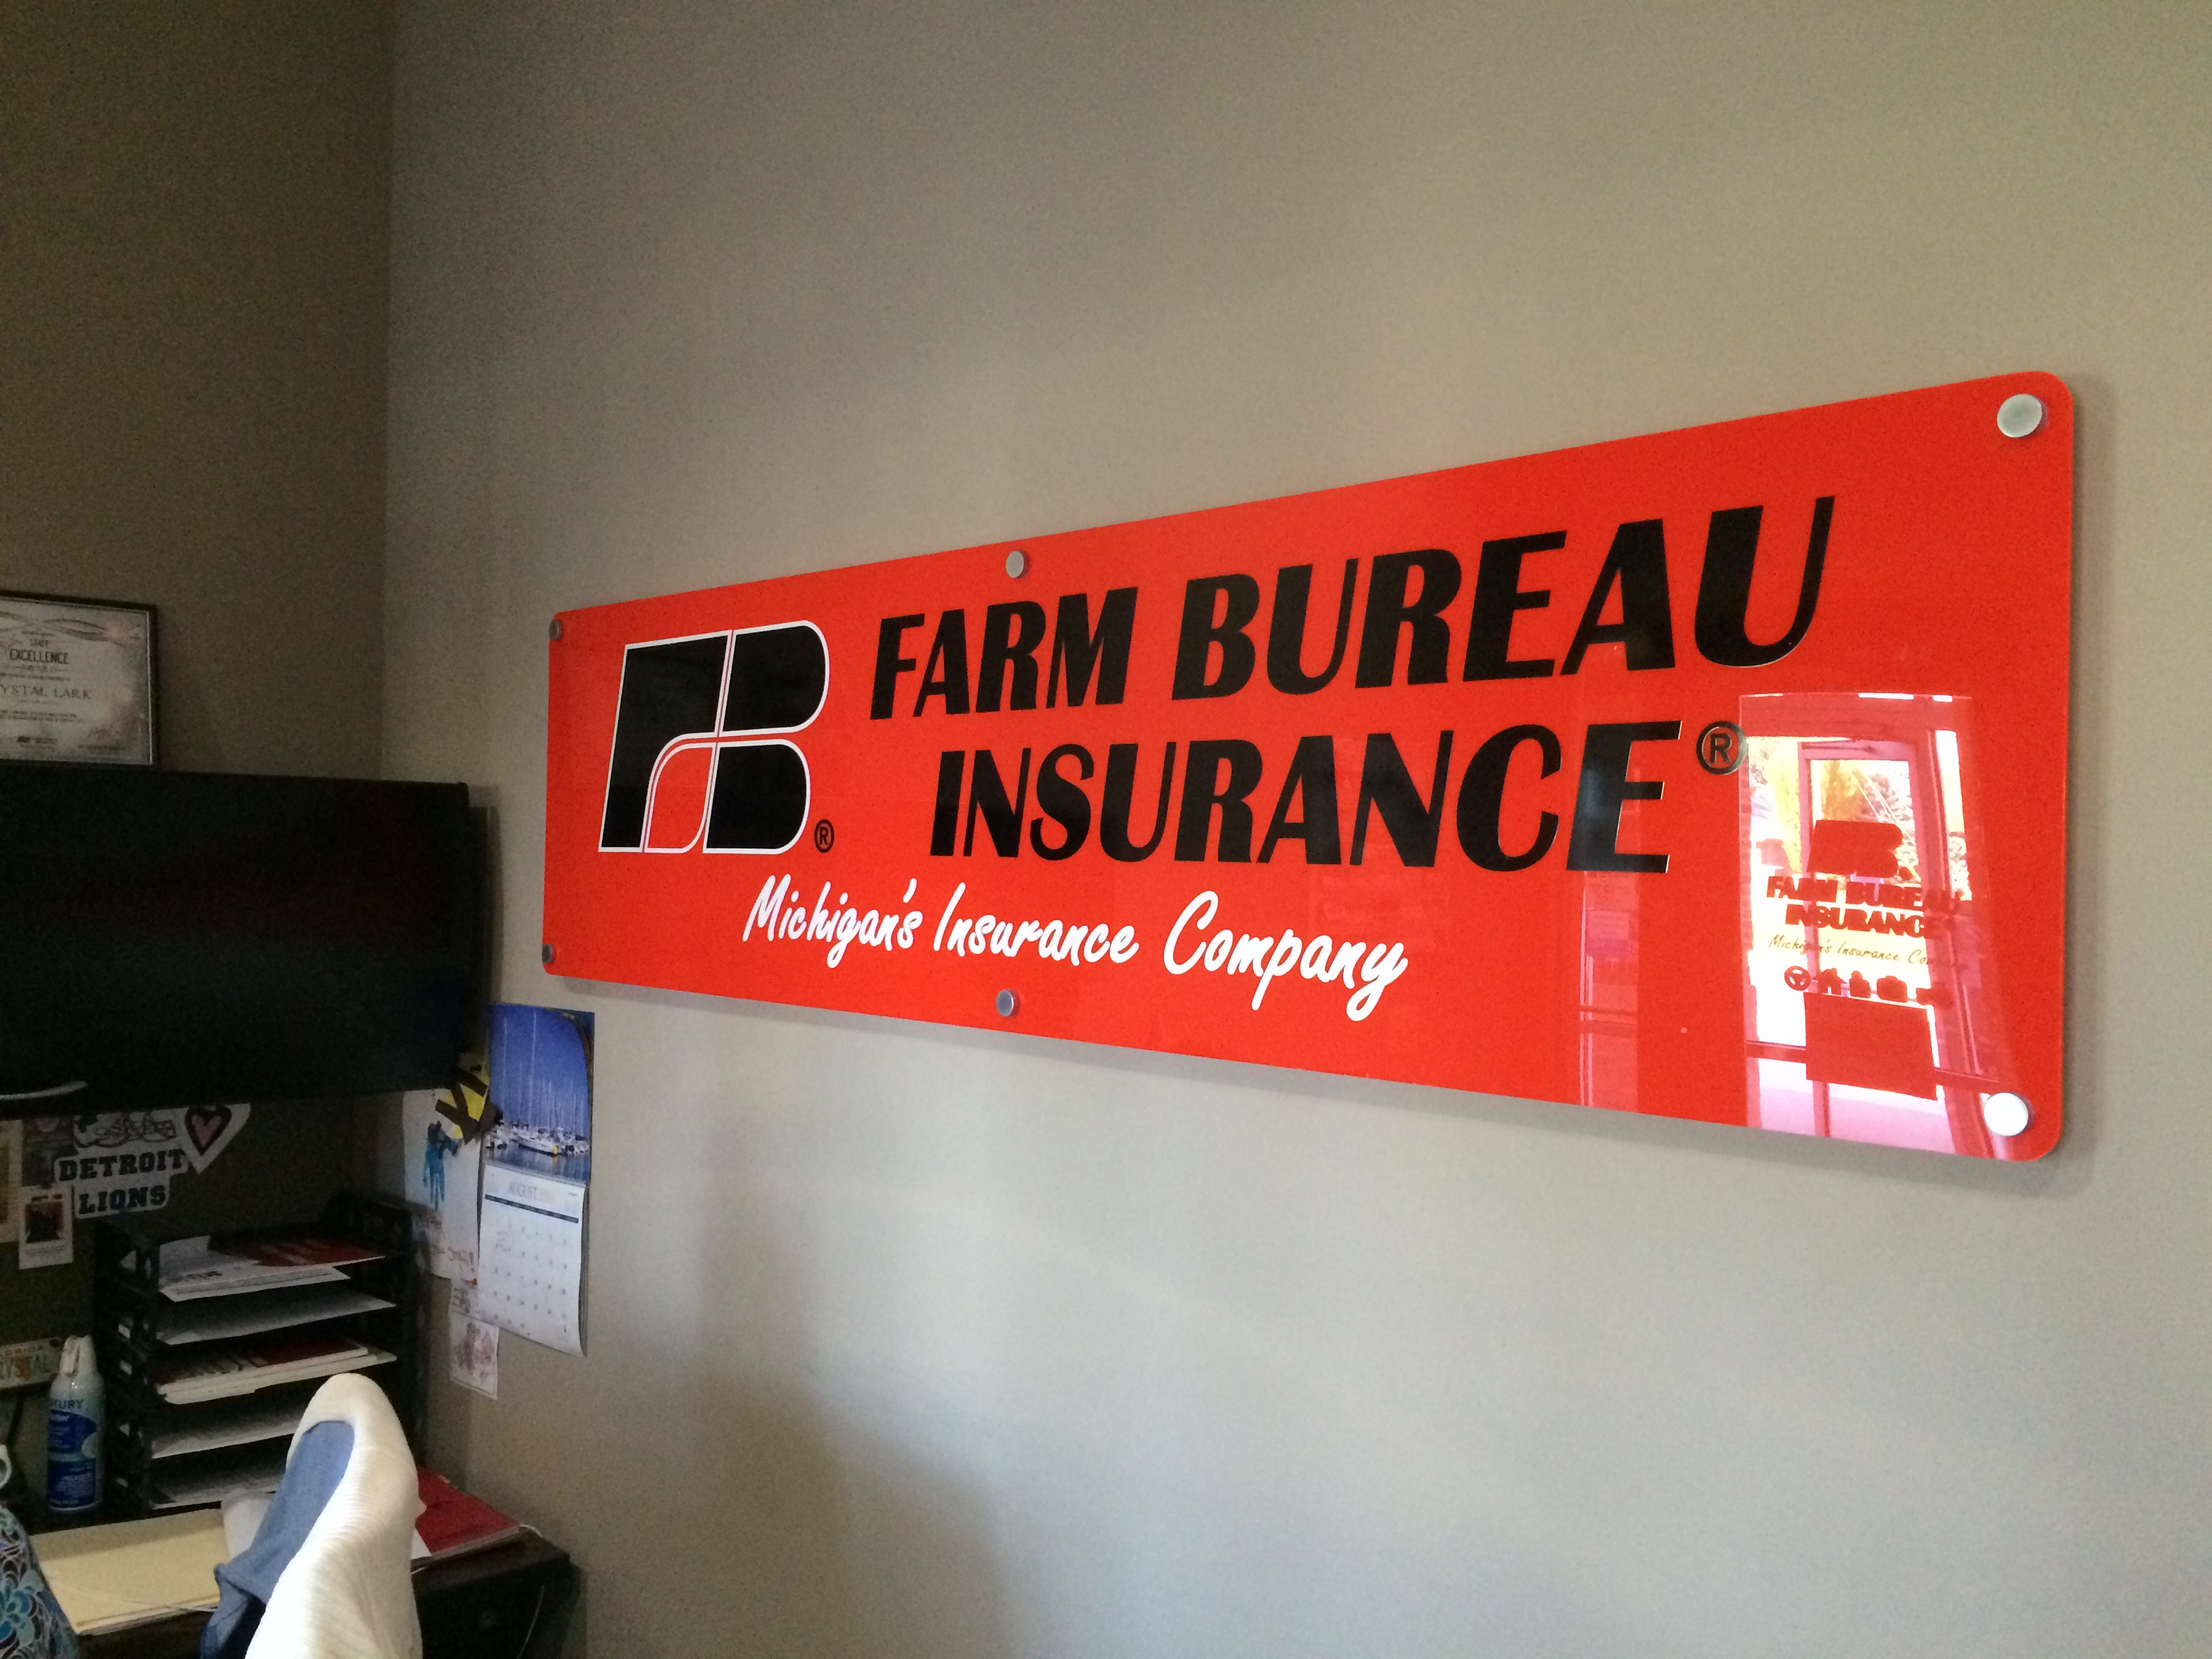 Farm Bureau Insurance Quote Brian Lane Agencyfarm Bureau Insurance 48801 Romeo Plank Rd Ste